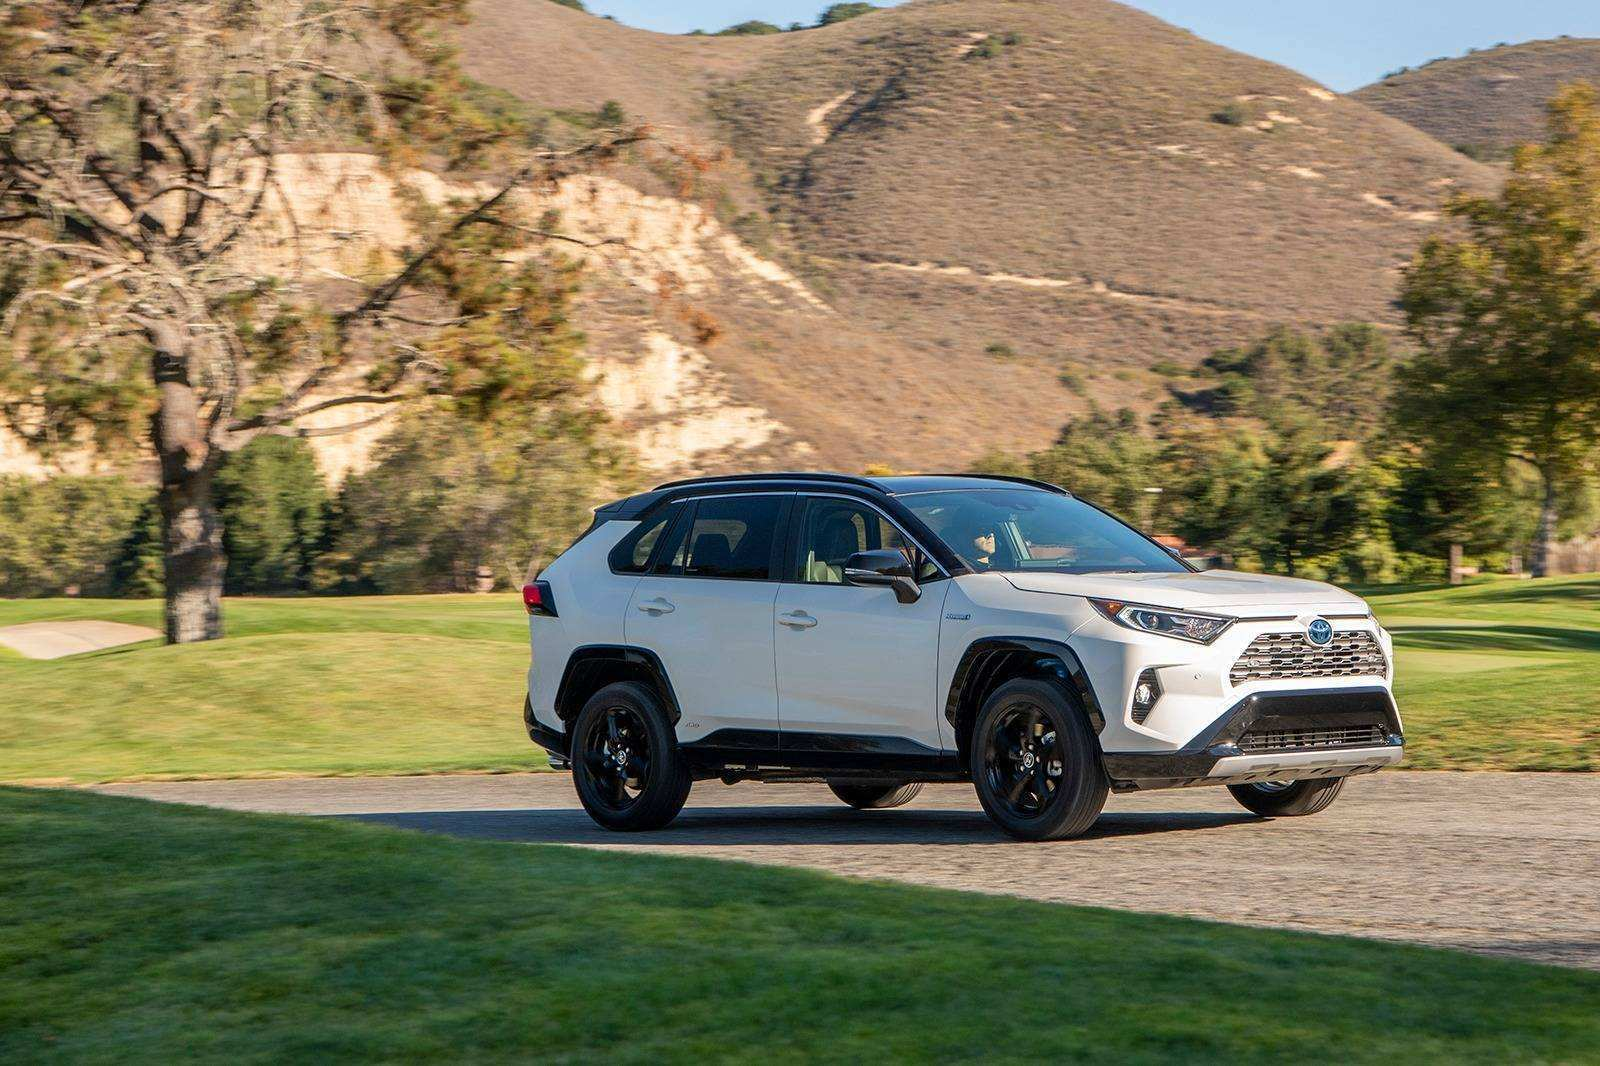 45 Gallery of Best Toyota Rav4 Hybrid 2019 Specs And Review Research New with Best Toyota Rav4 Hybrid 2019 Specs And Review